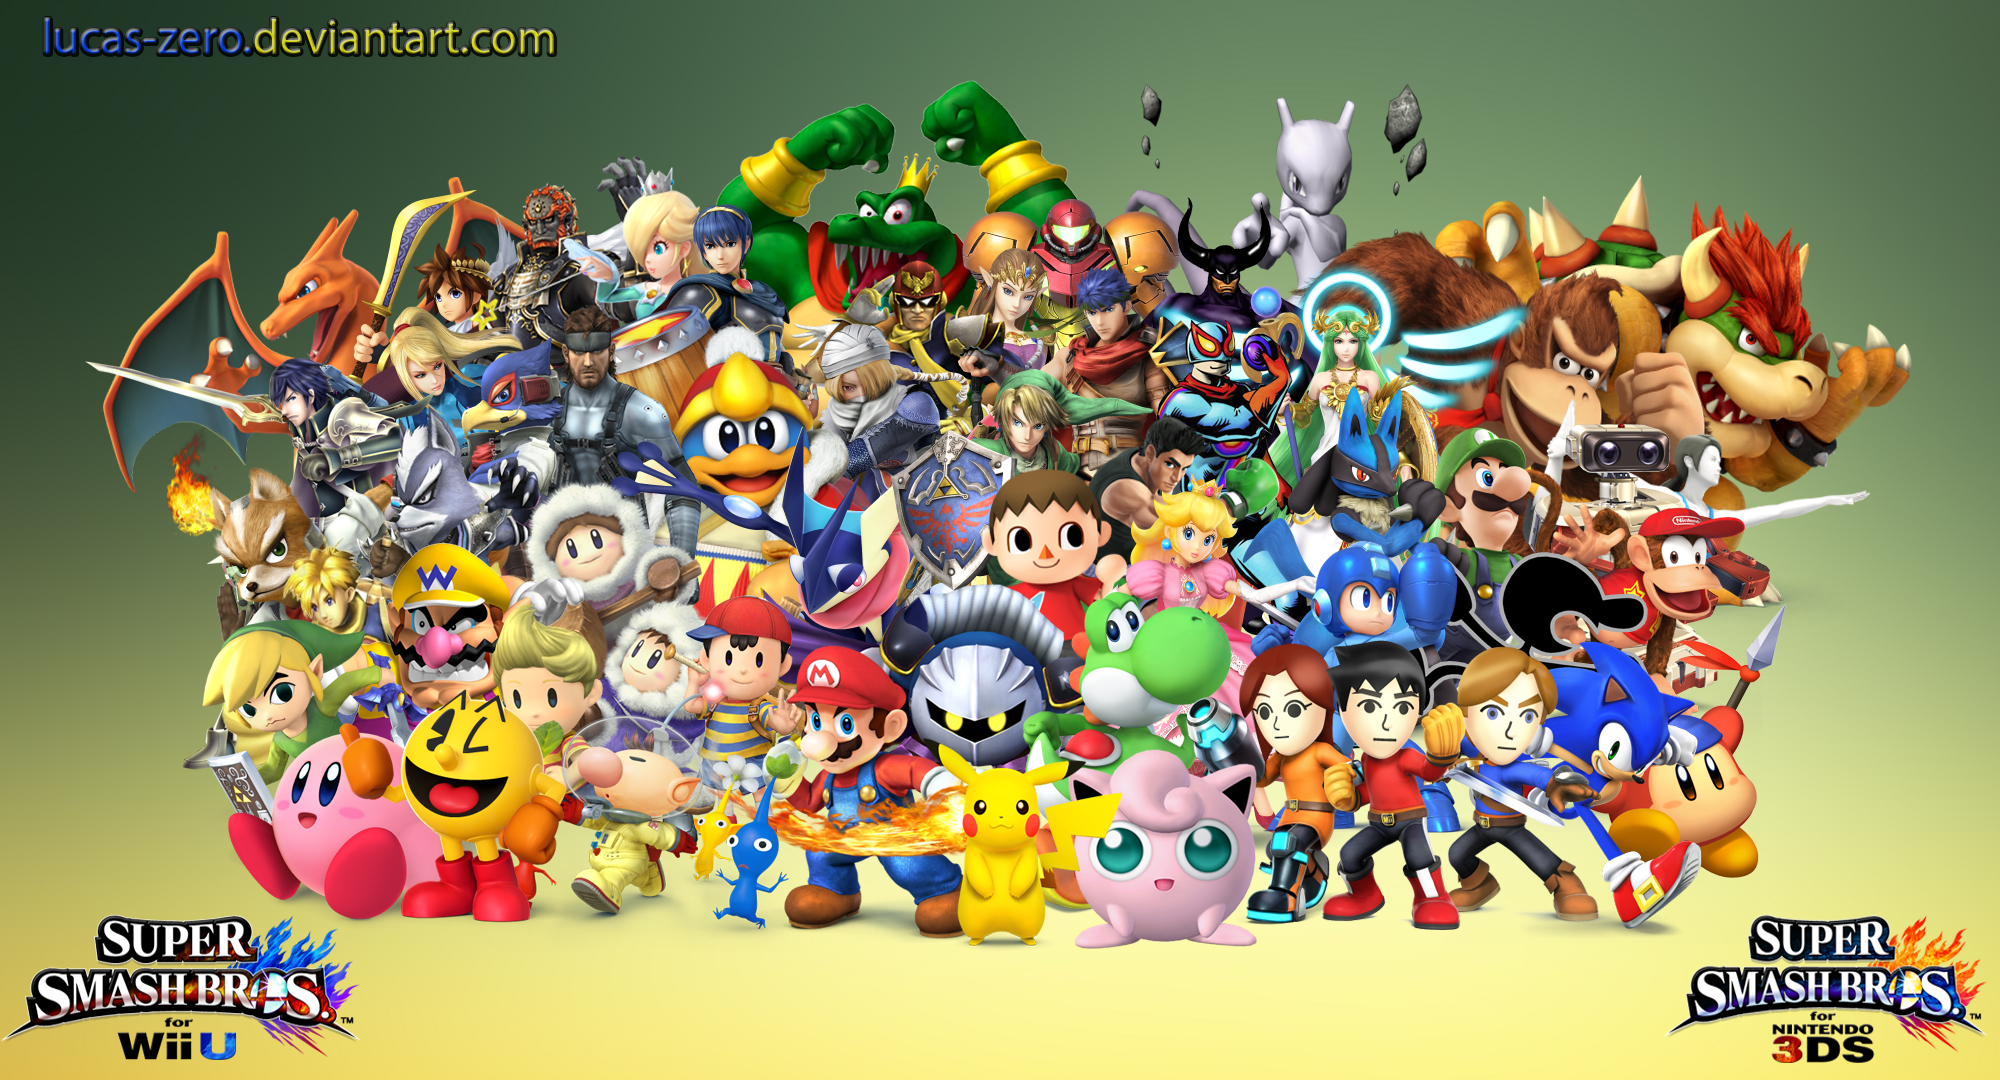 Mewkwota Super Smash Bros 4: Super Smash Bros 4 Dream Roster Wallpaper By Lucas-Zero On